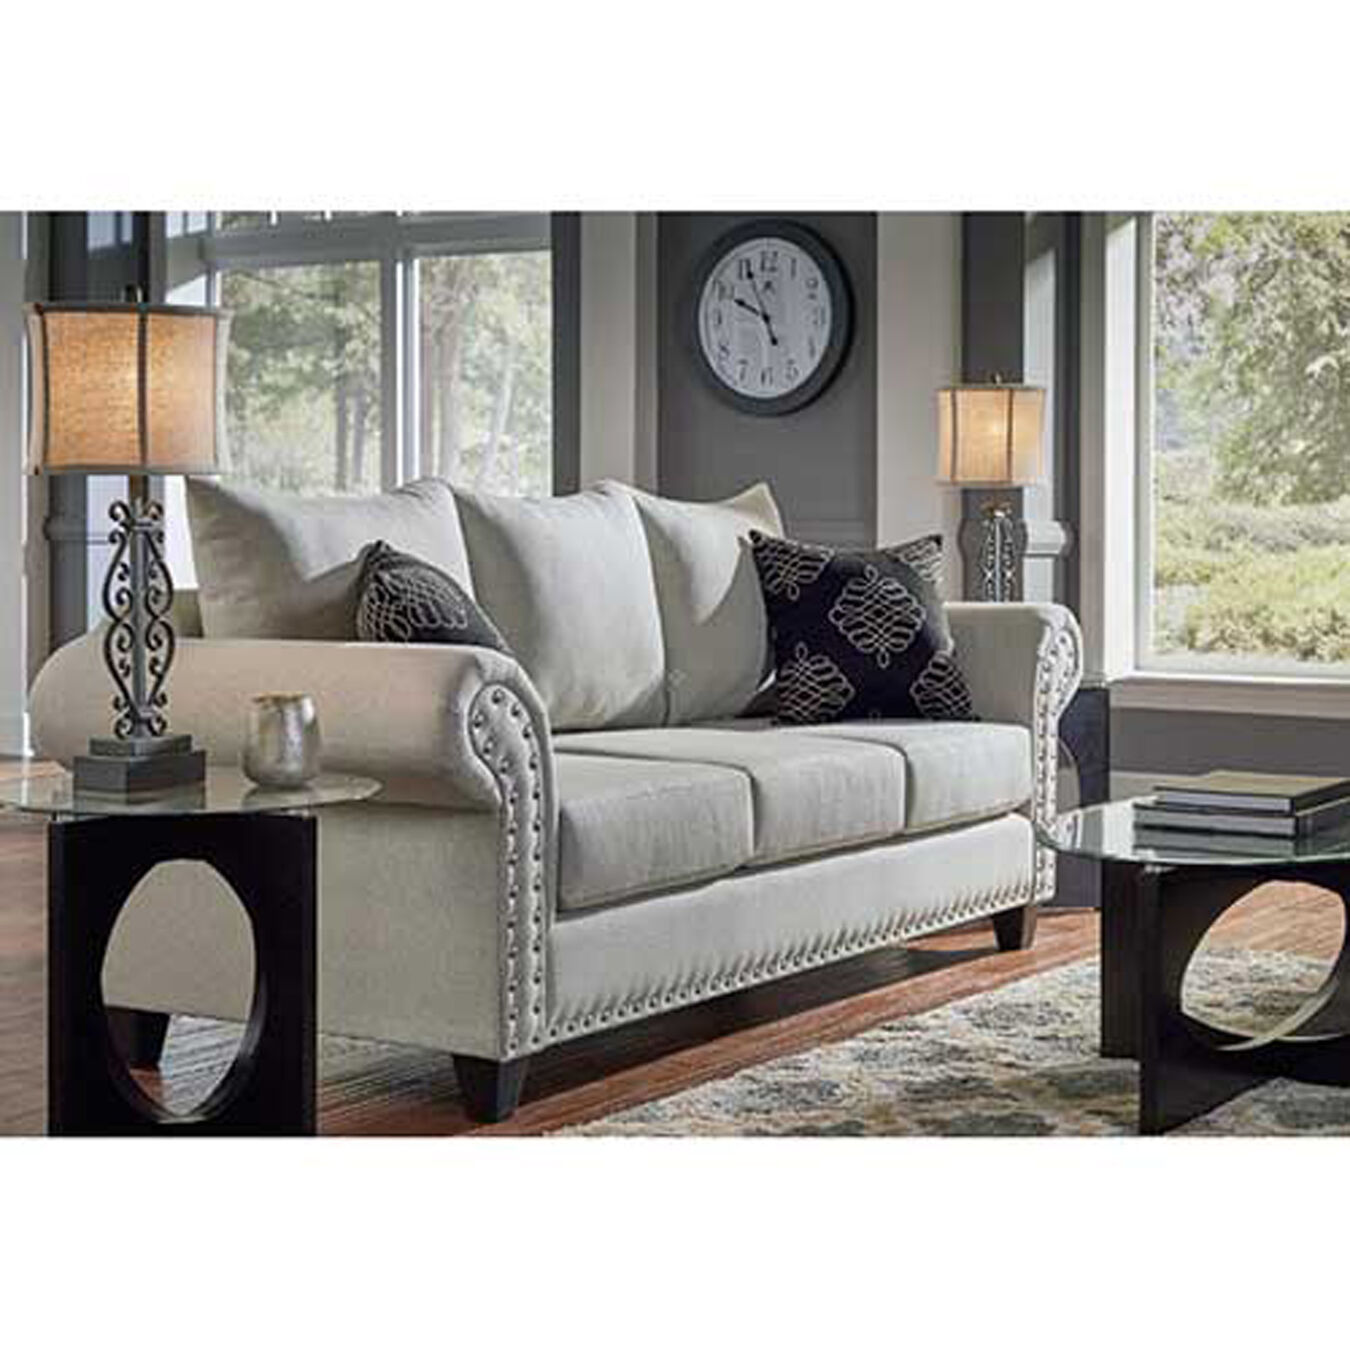 7 piece living room set microfiber couch 7piece beverly living room collection woodhaven industries sets